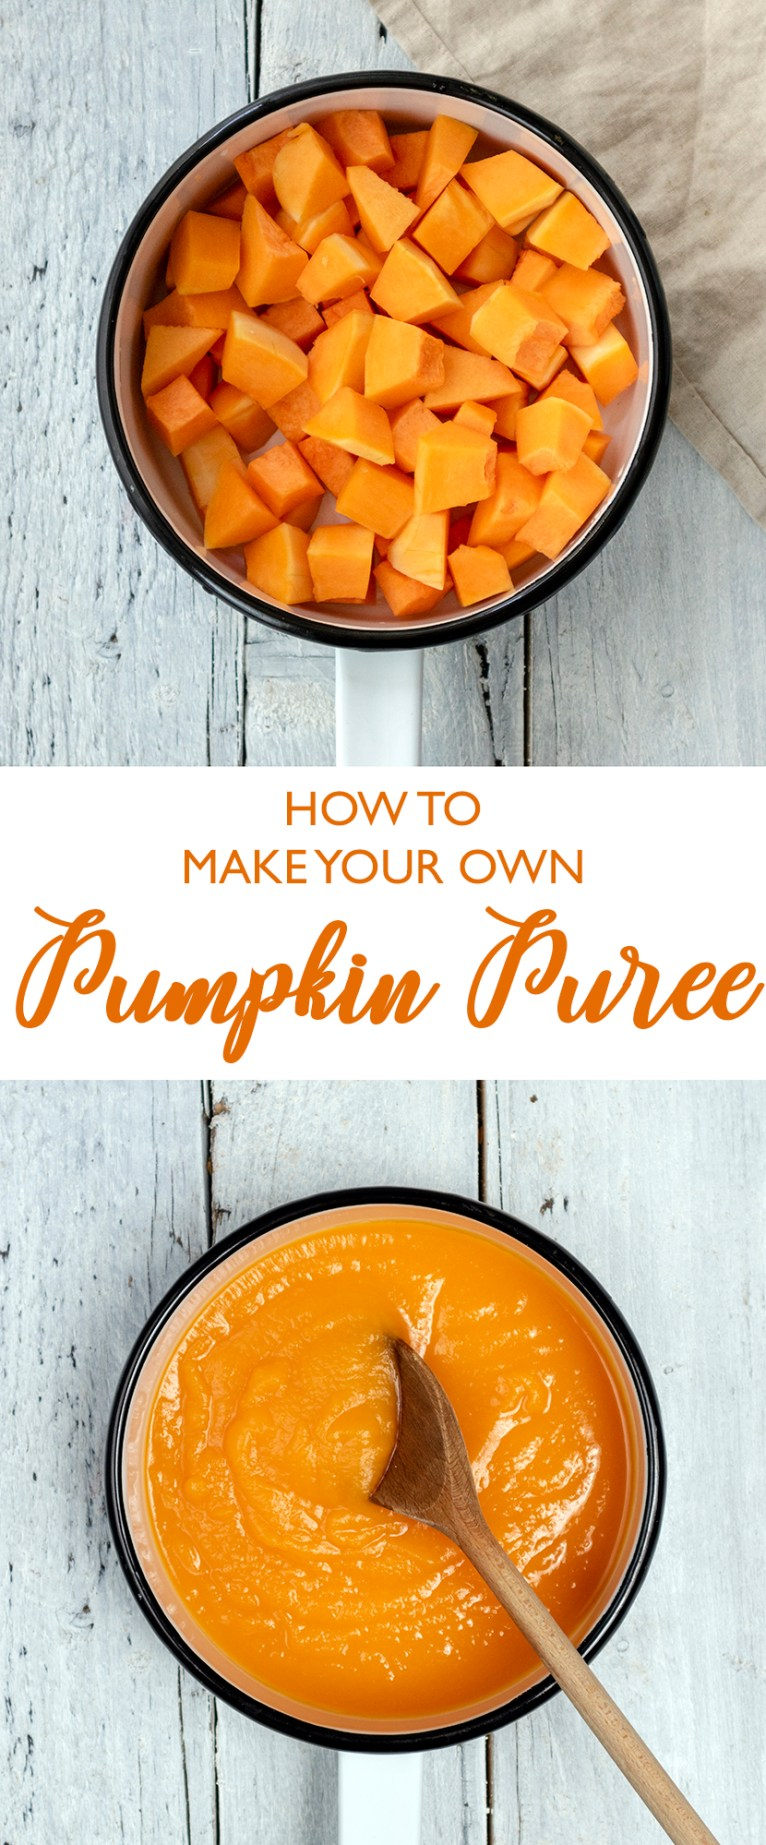 Homemade Pumpkin Puree Recipe (Vegan)